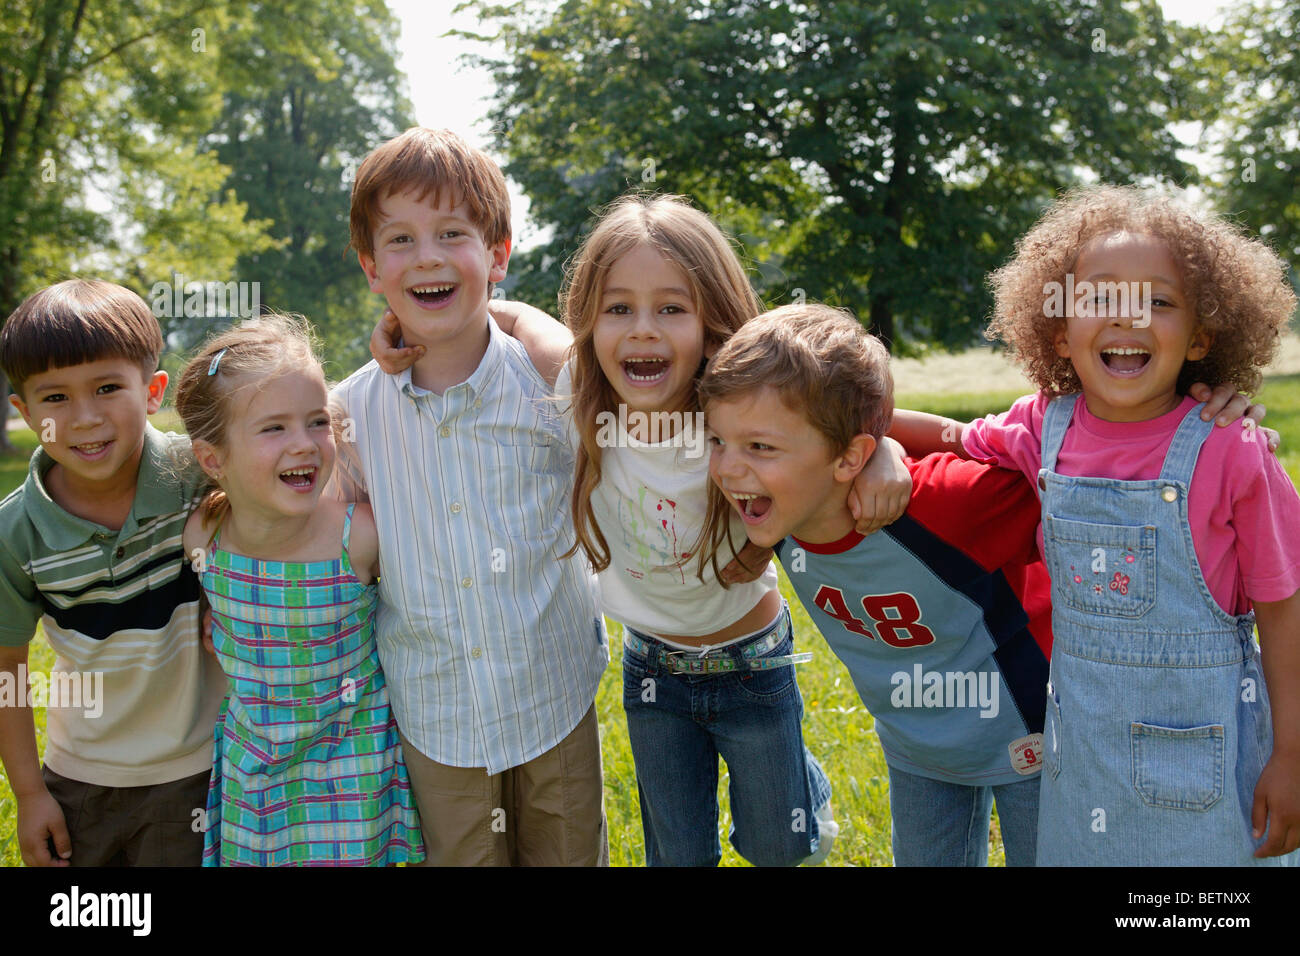 group of six children in the park laughing with their arms around each other - Stock Image